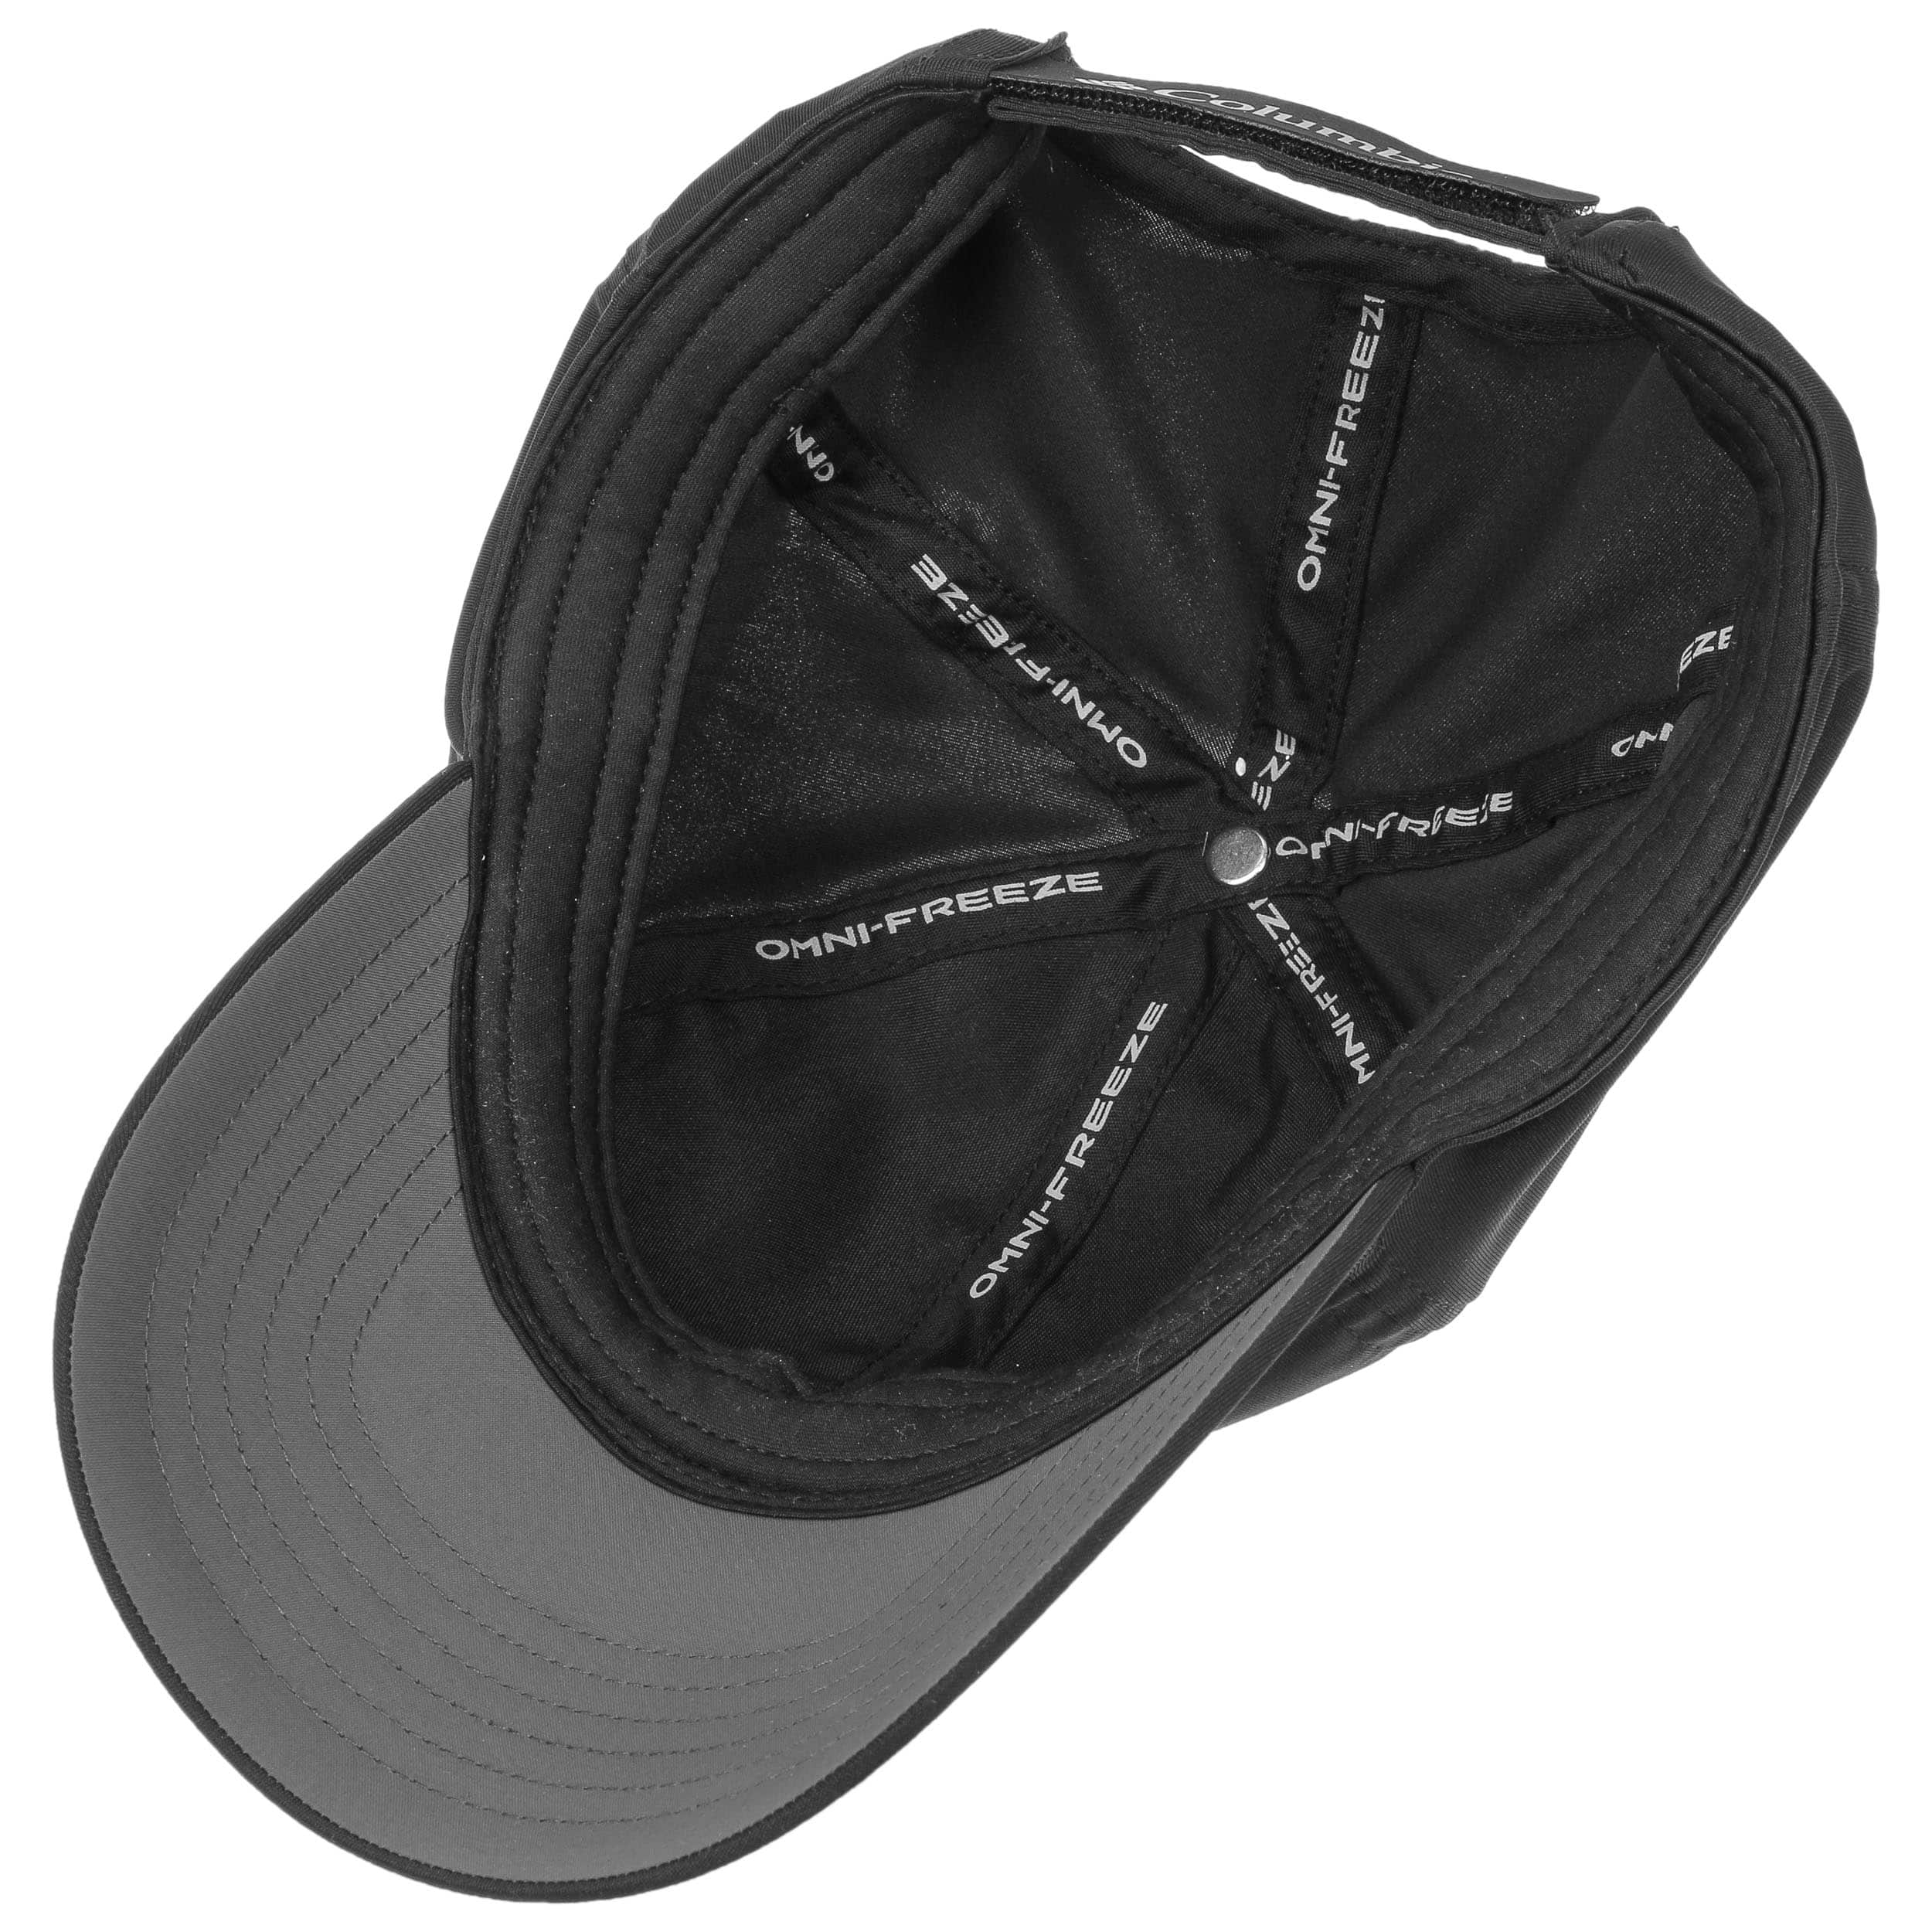 ... Coolhead Strapback Cap by Columbia - black 2 ... 0ee3800d1a1